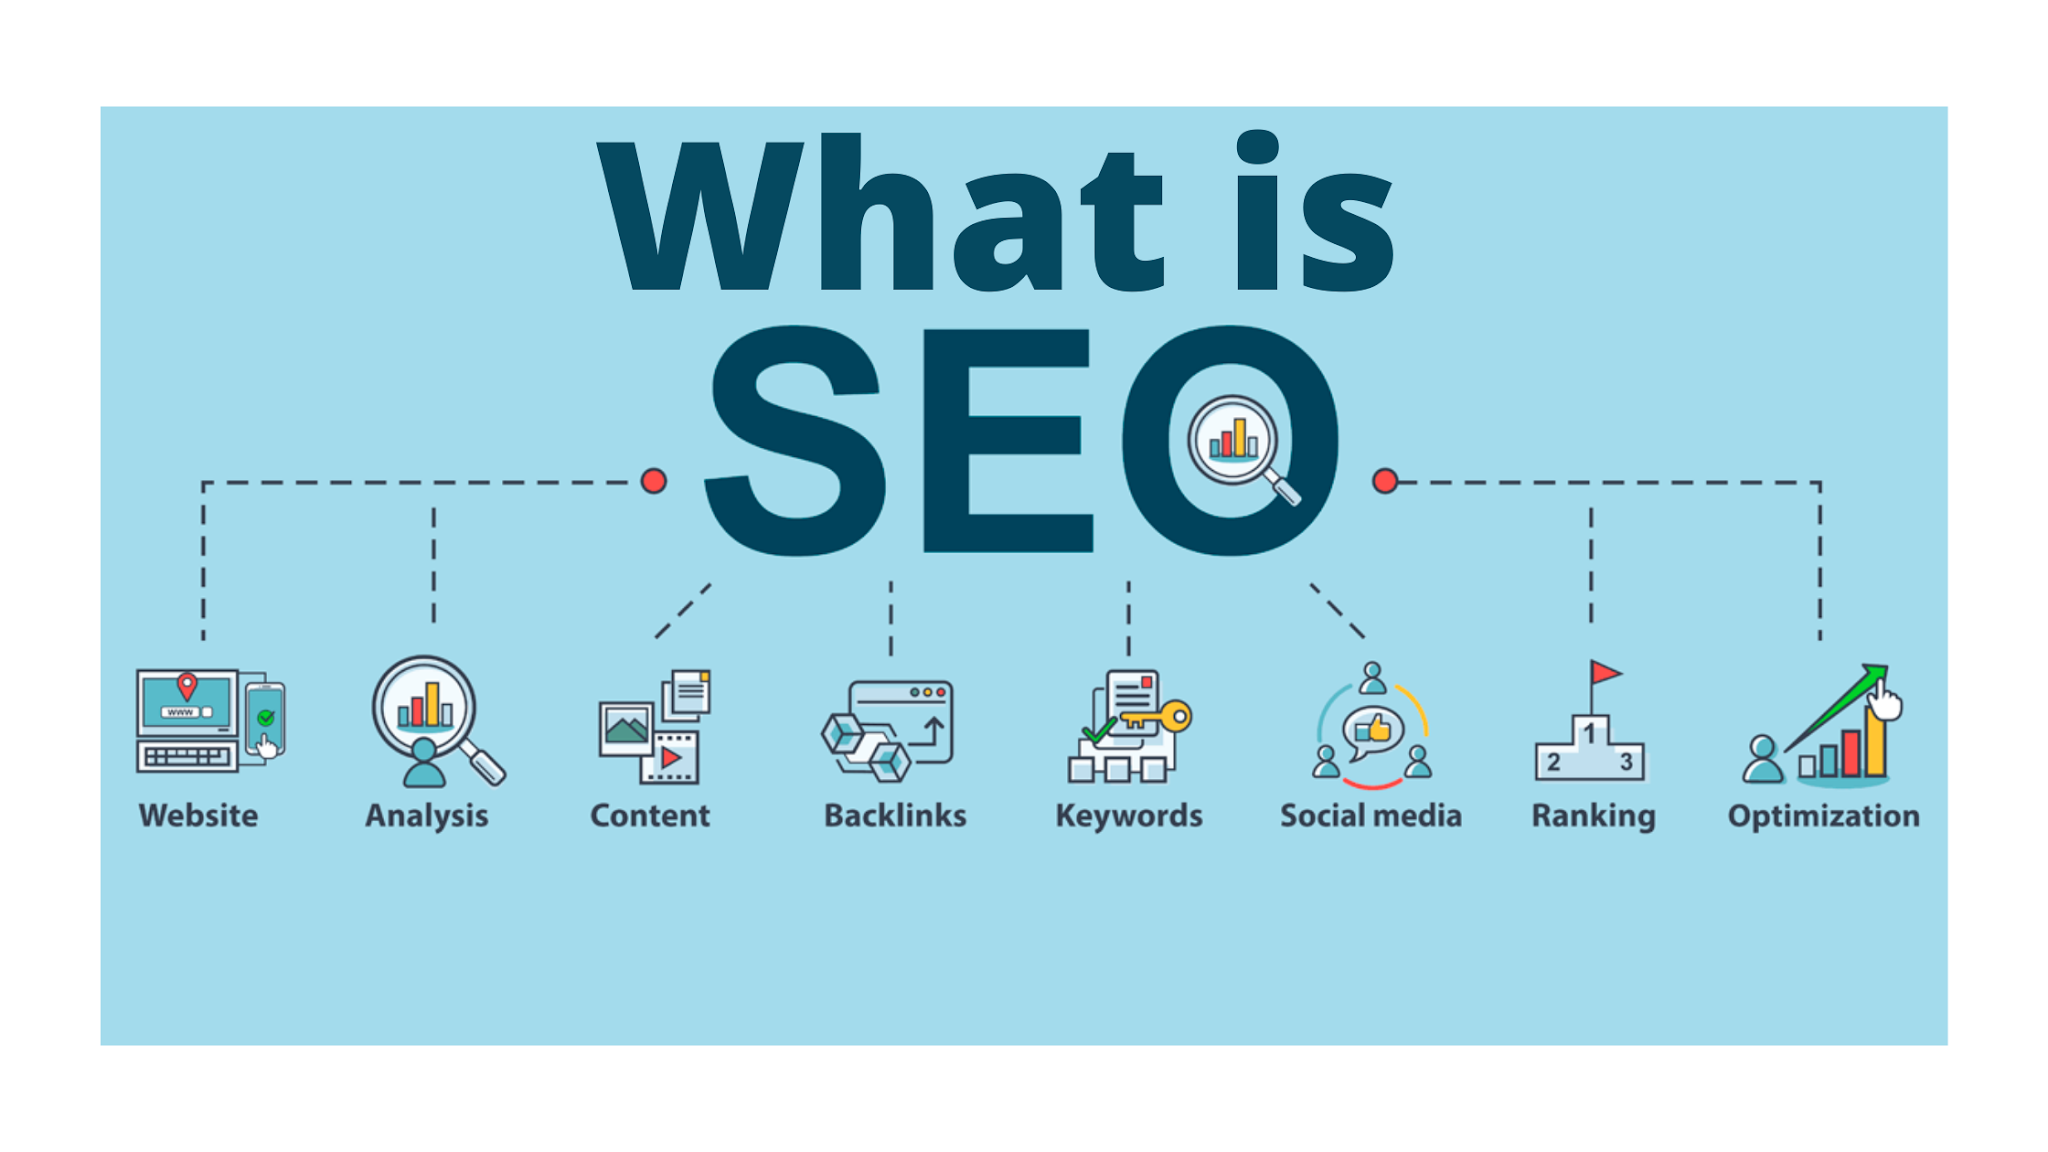 What is SEO? SEO stands for search engine optimization and is a process of making links and content